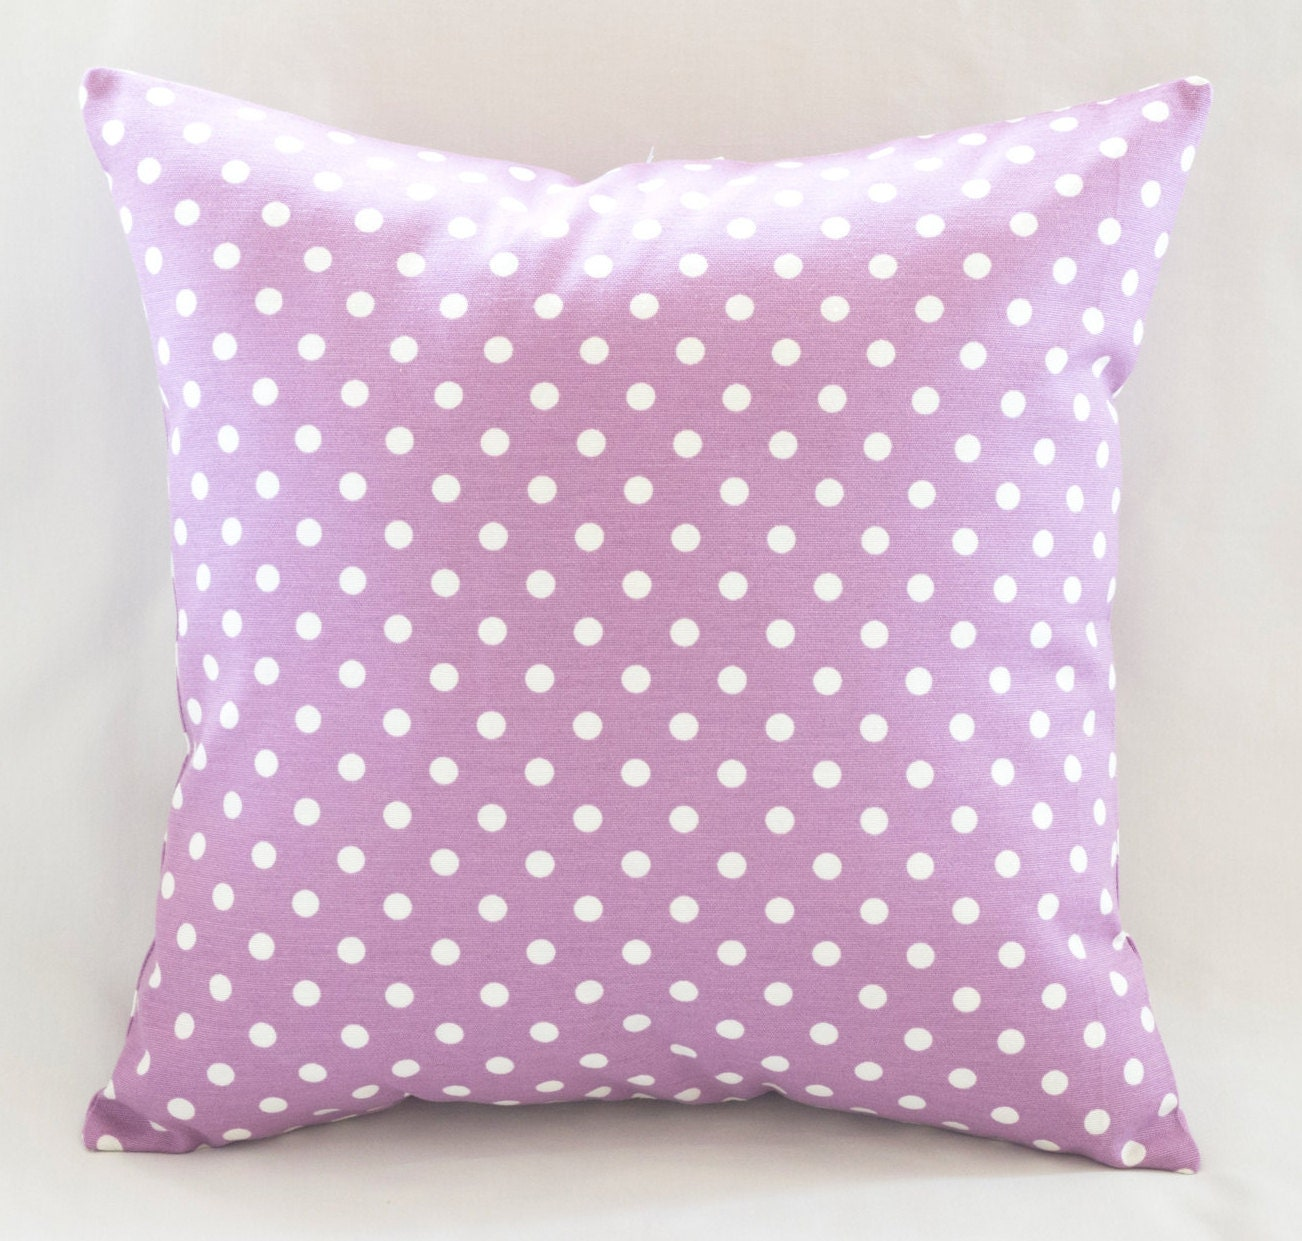 Decorative Pillow Lilac : Lilac Polka-Dot Decorative Pillow Spotty Cushion by prettysurprise